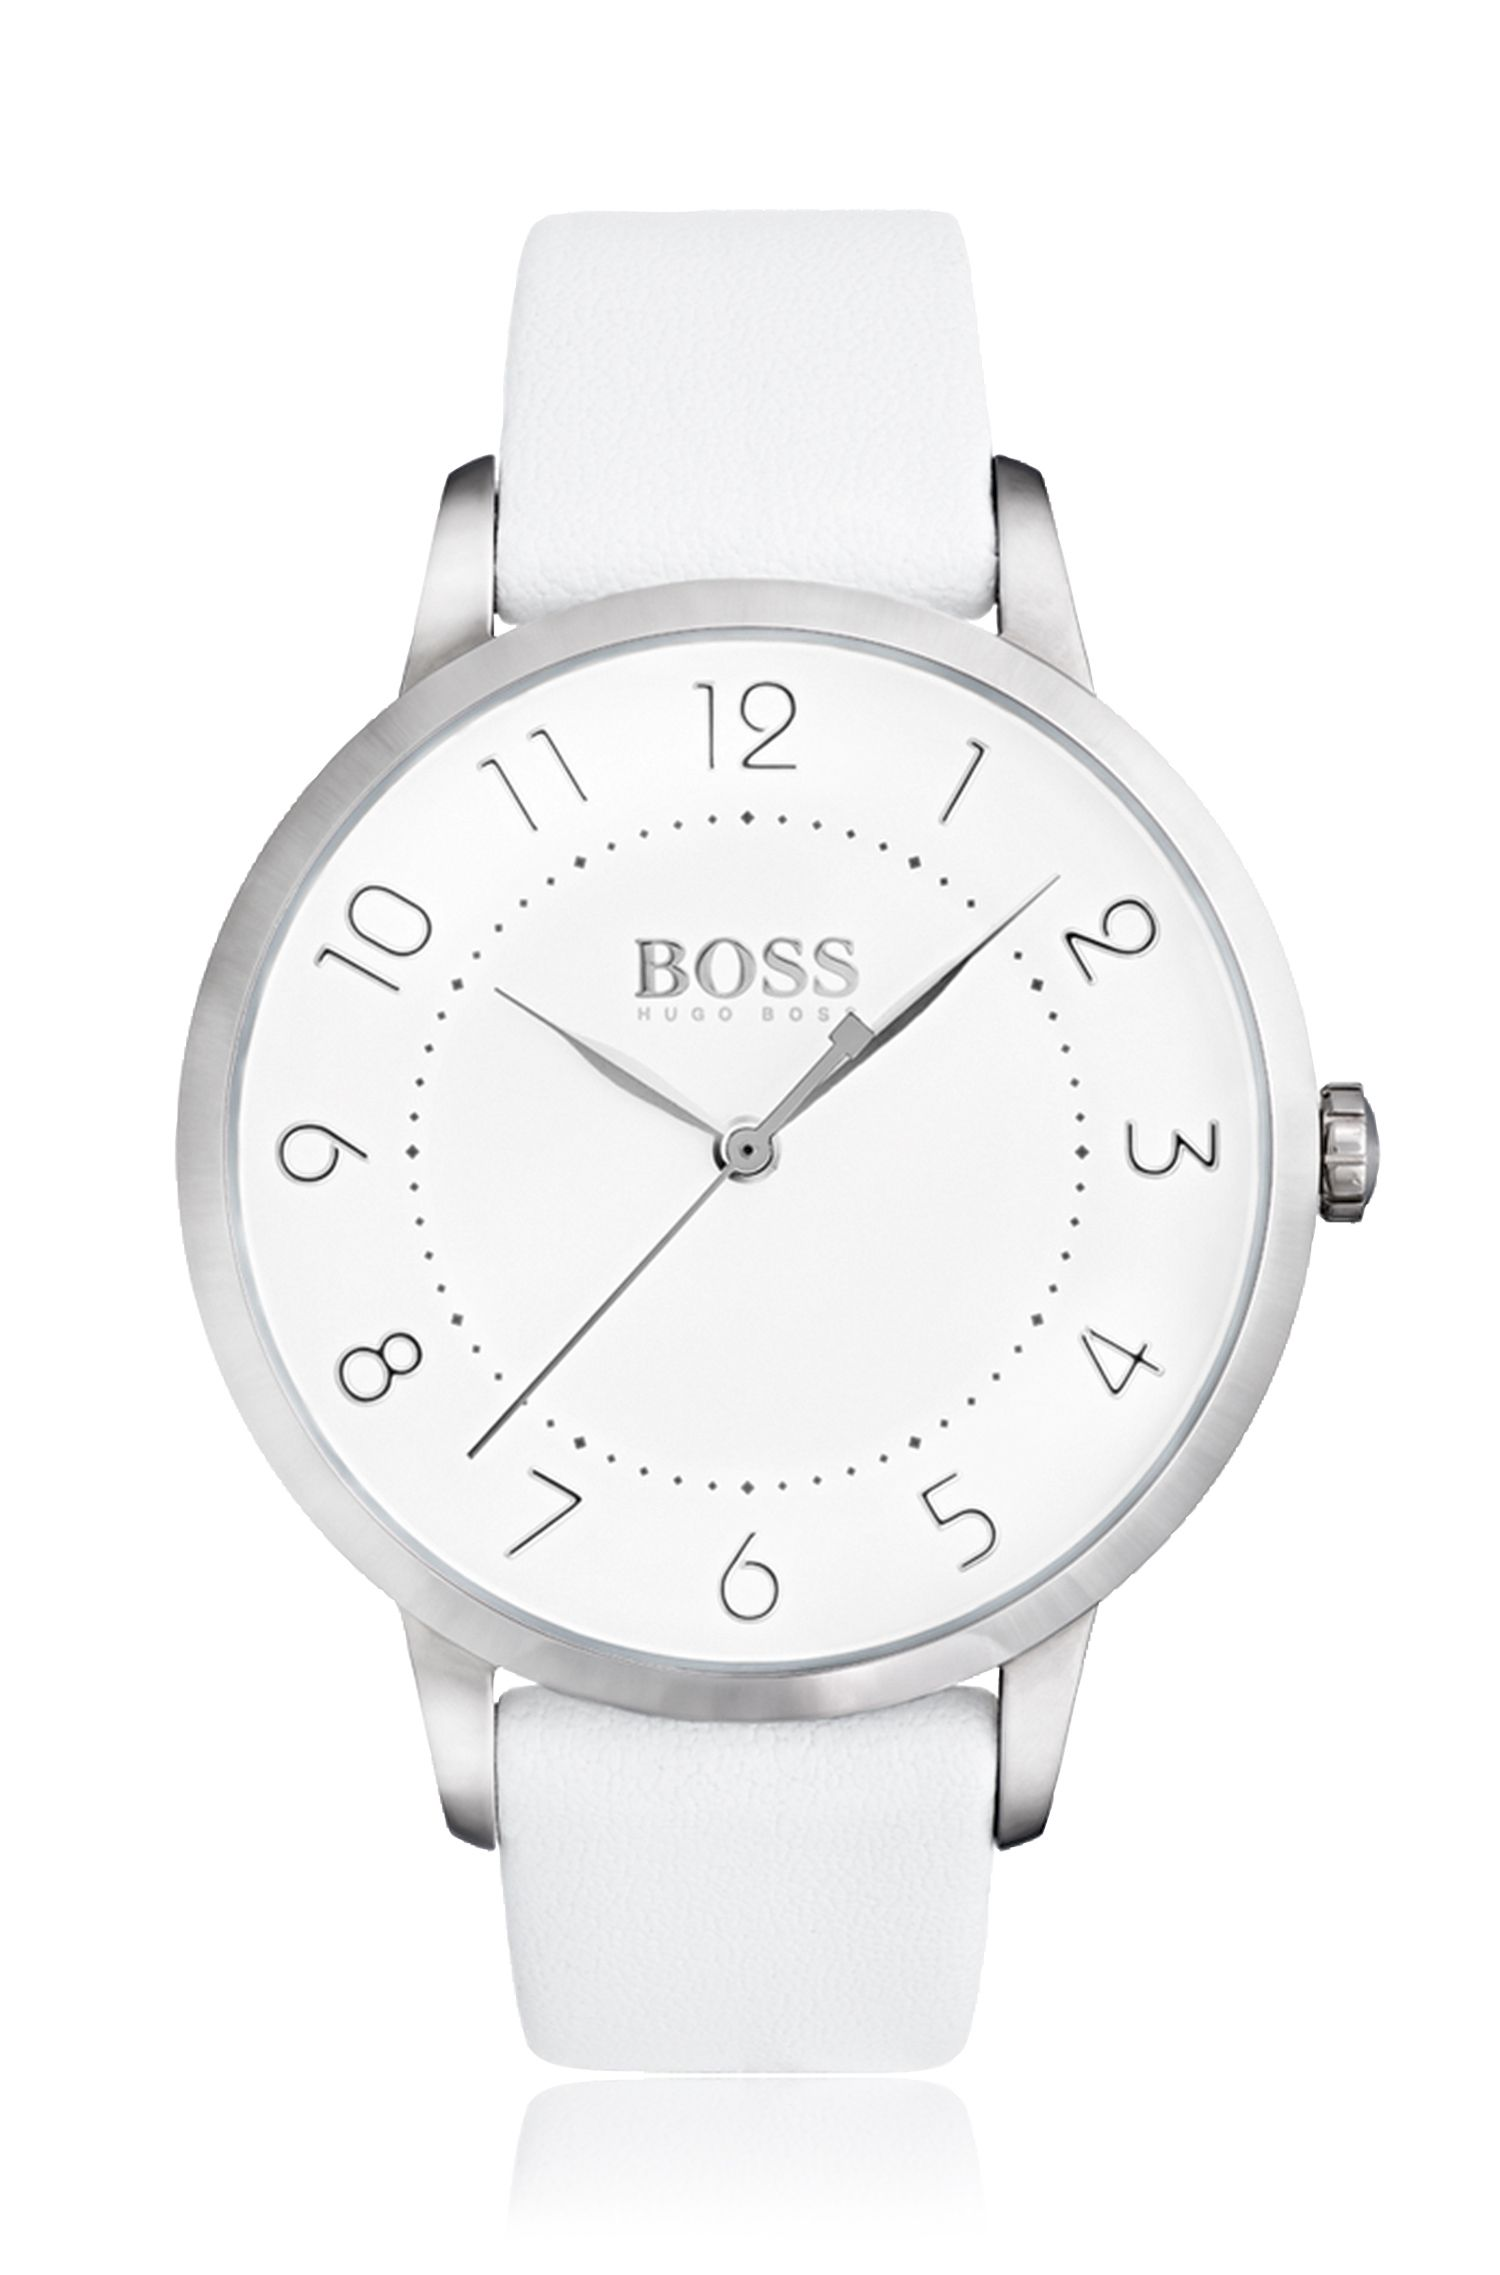 Three-hand watch in polished stainless steel